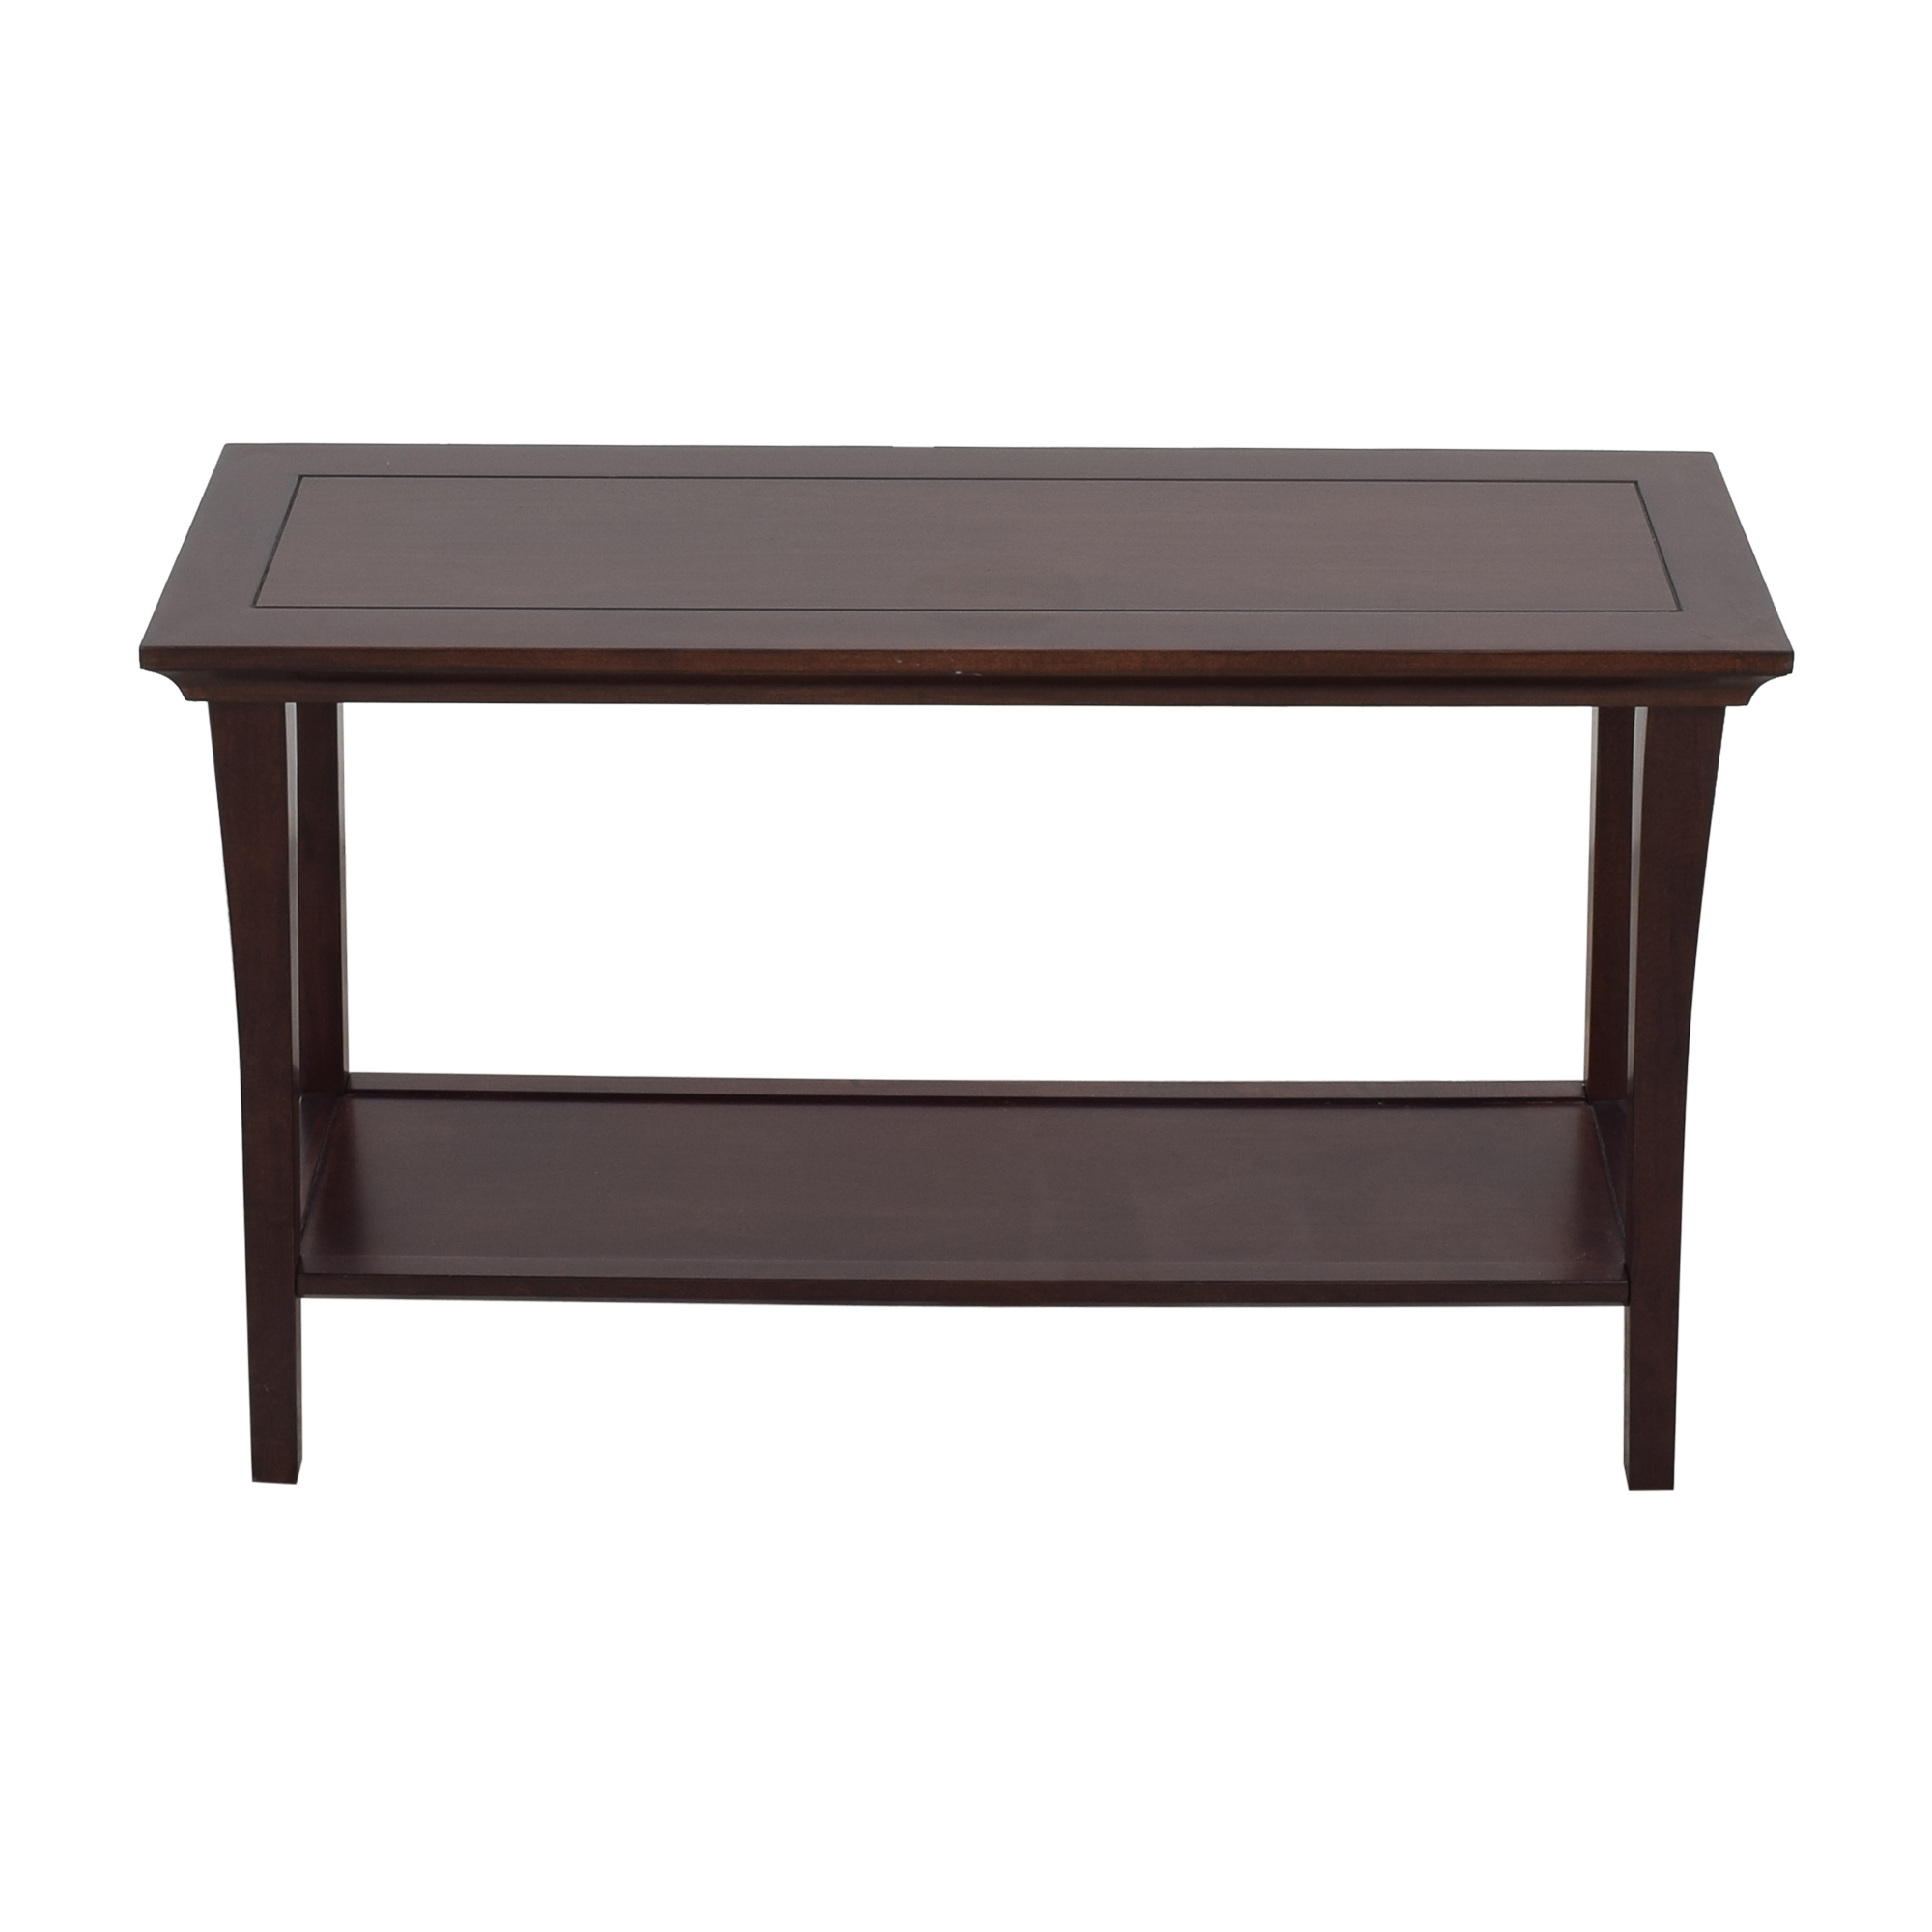 Pottery Barn Pottery Barn Two Level Console Table discount